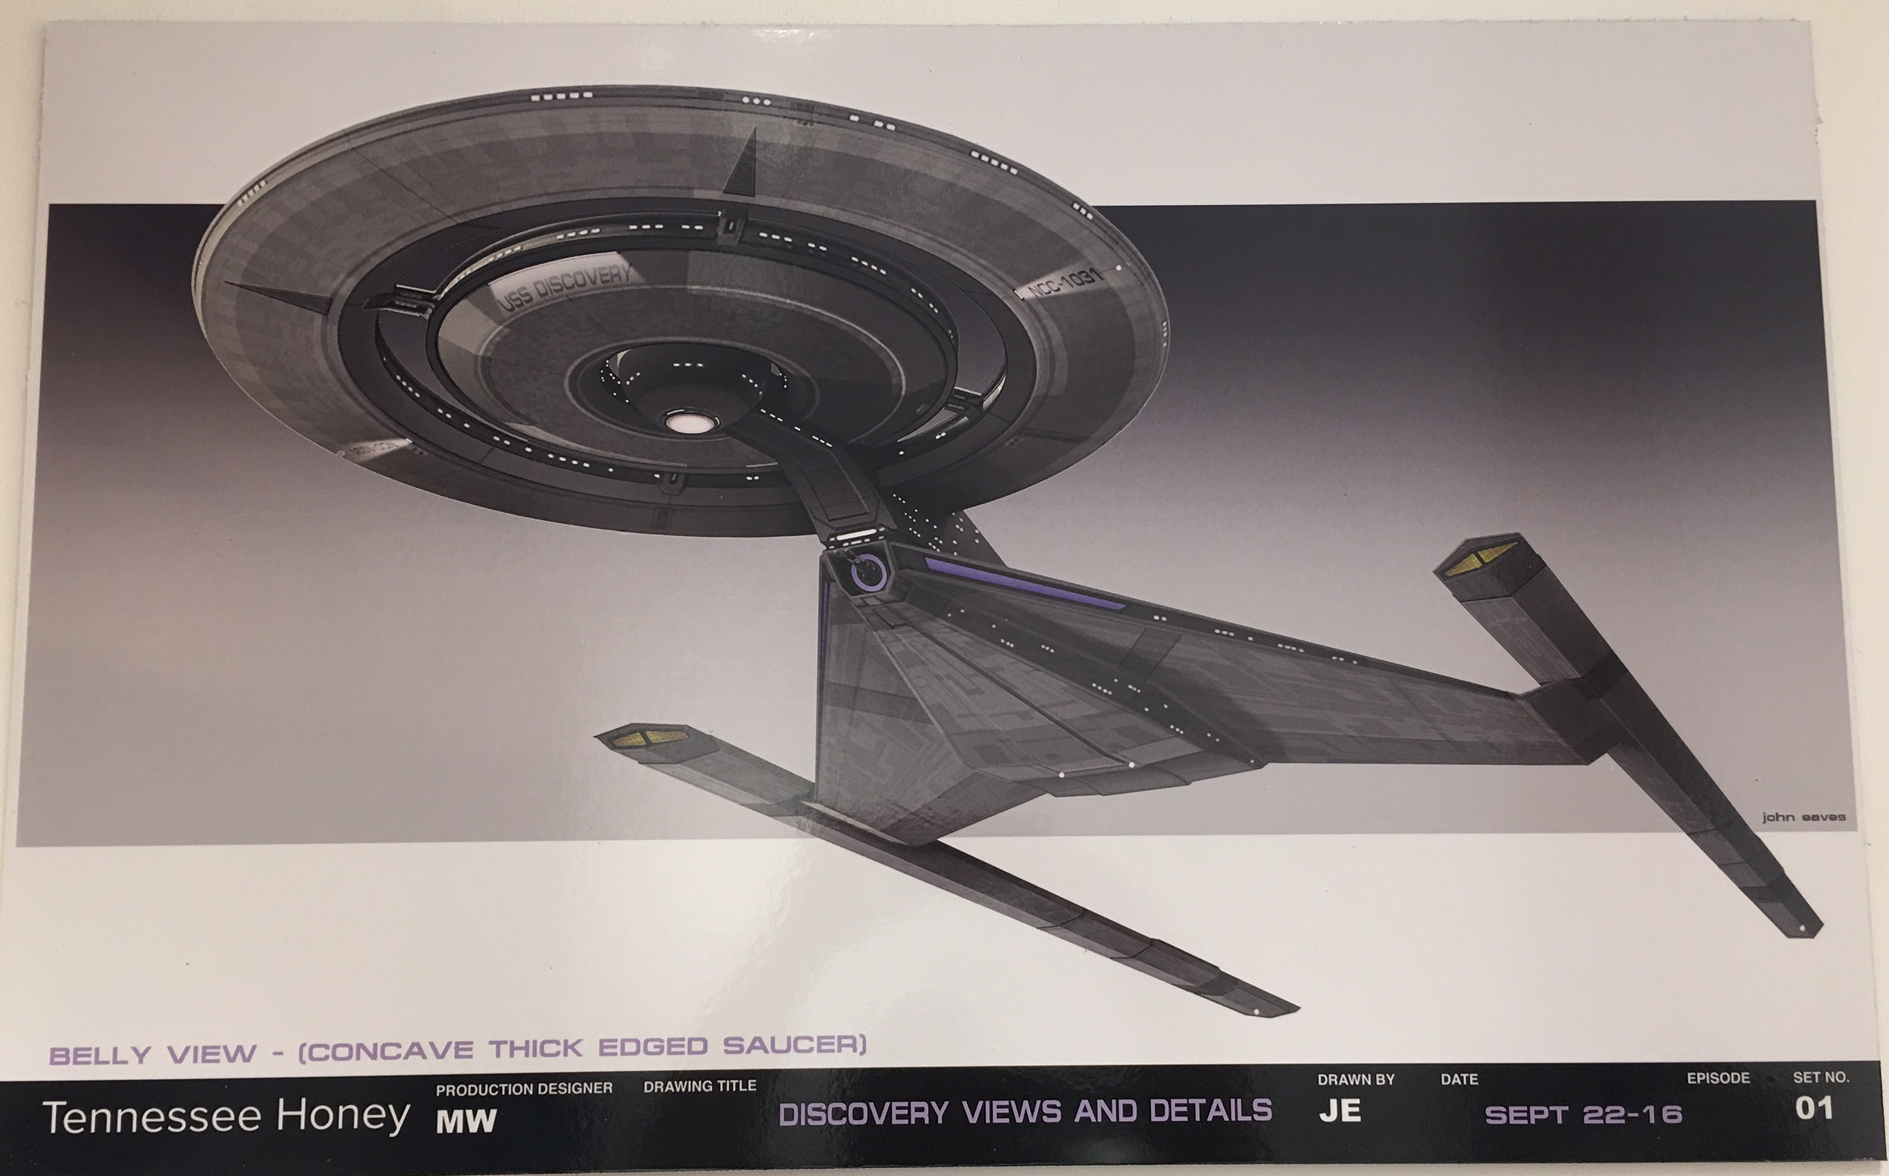 startrek-discovery-exhibit-photo53.jpg